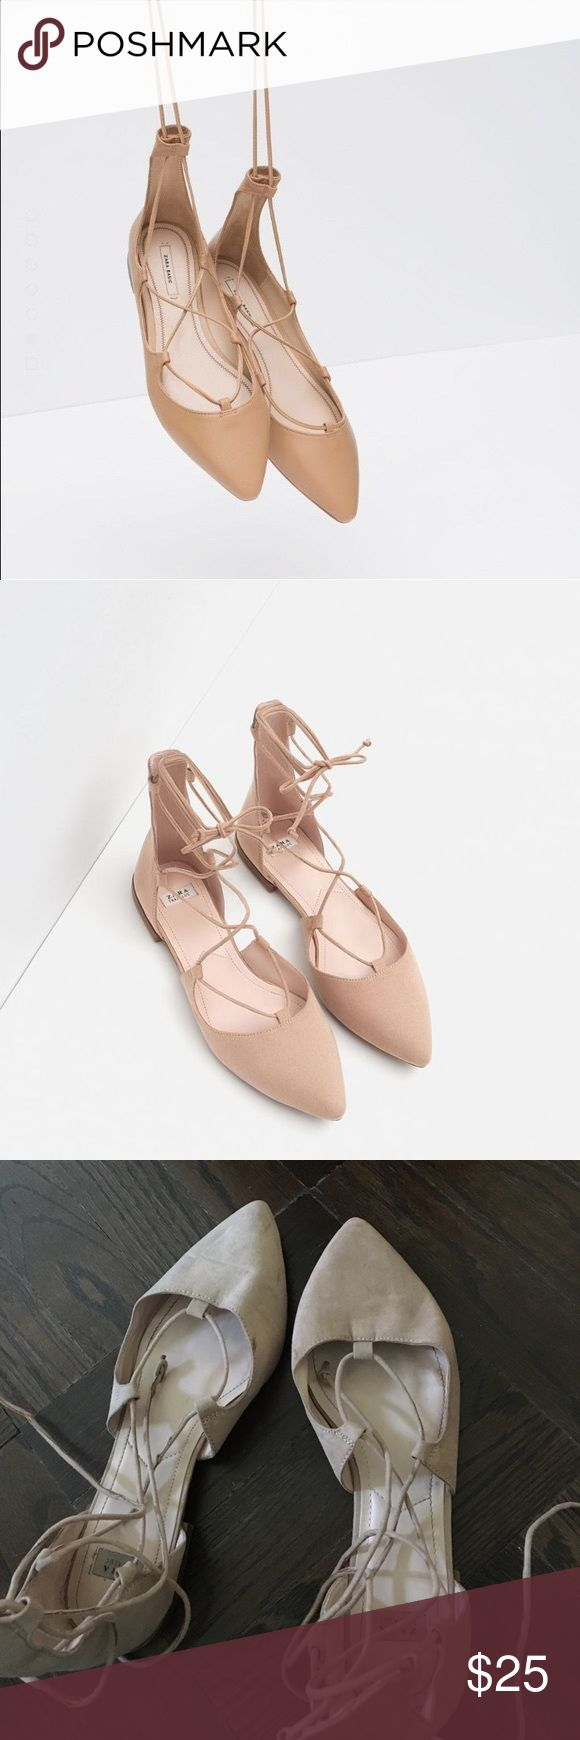 Zara pink beige lace up ballet flats Purchased from Zara. Faux suede. Some very small signs of wear than can be washed off. Some parts of the laces are slightly damaged but not visibly. Size 38. Elegant Zara Shoes Flats & Loafers